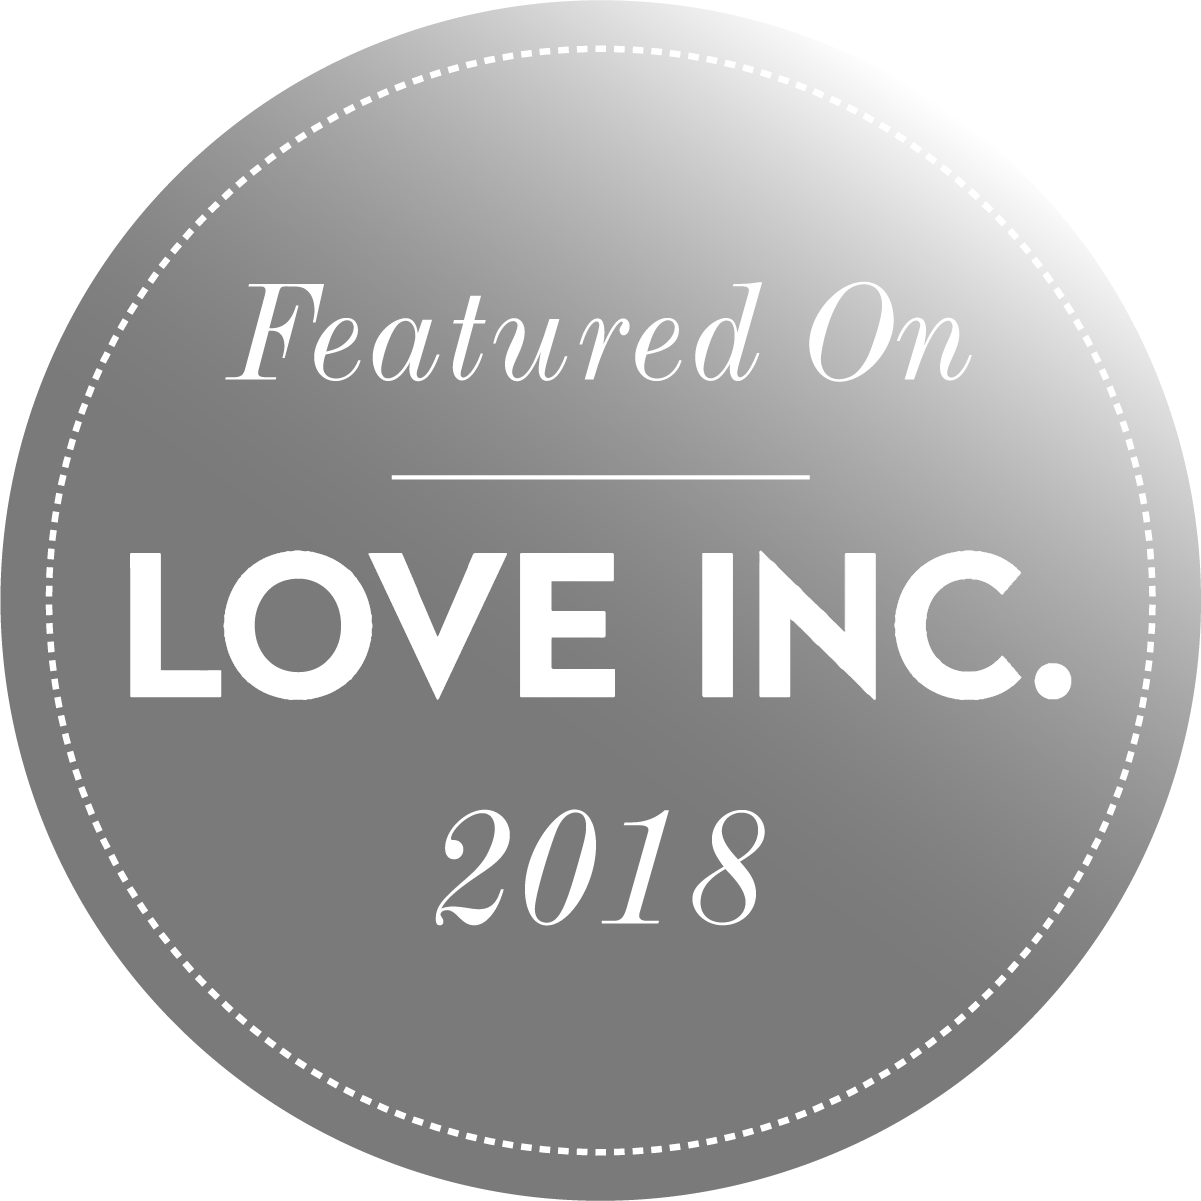 Love inc_badge_grey[3].png